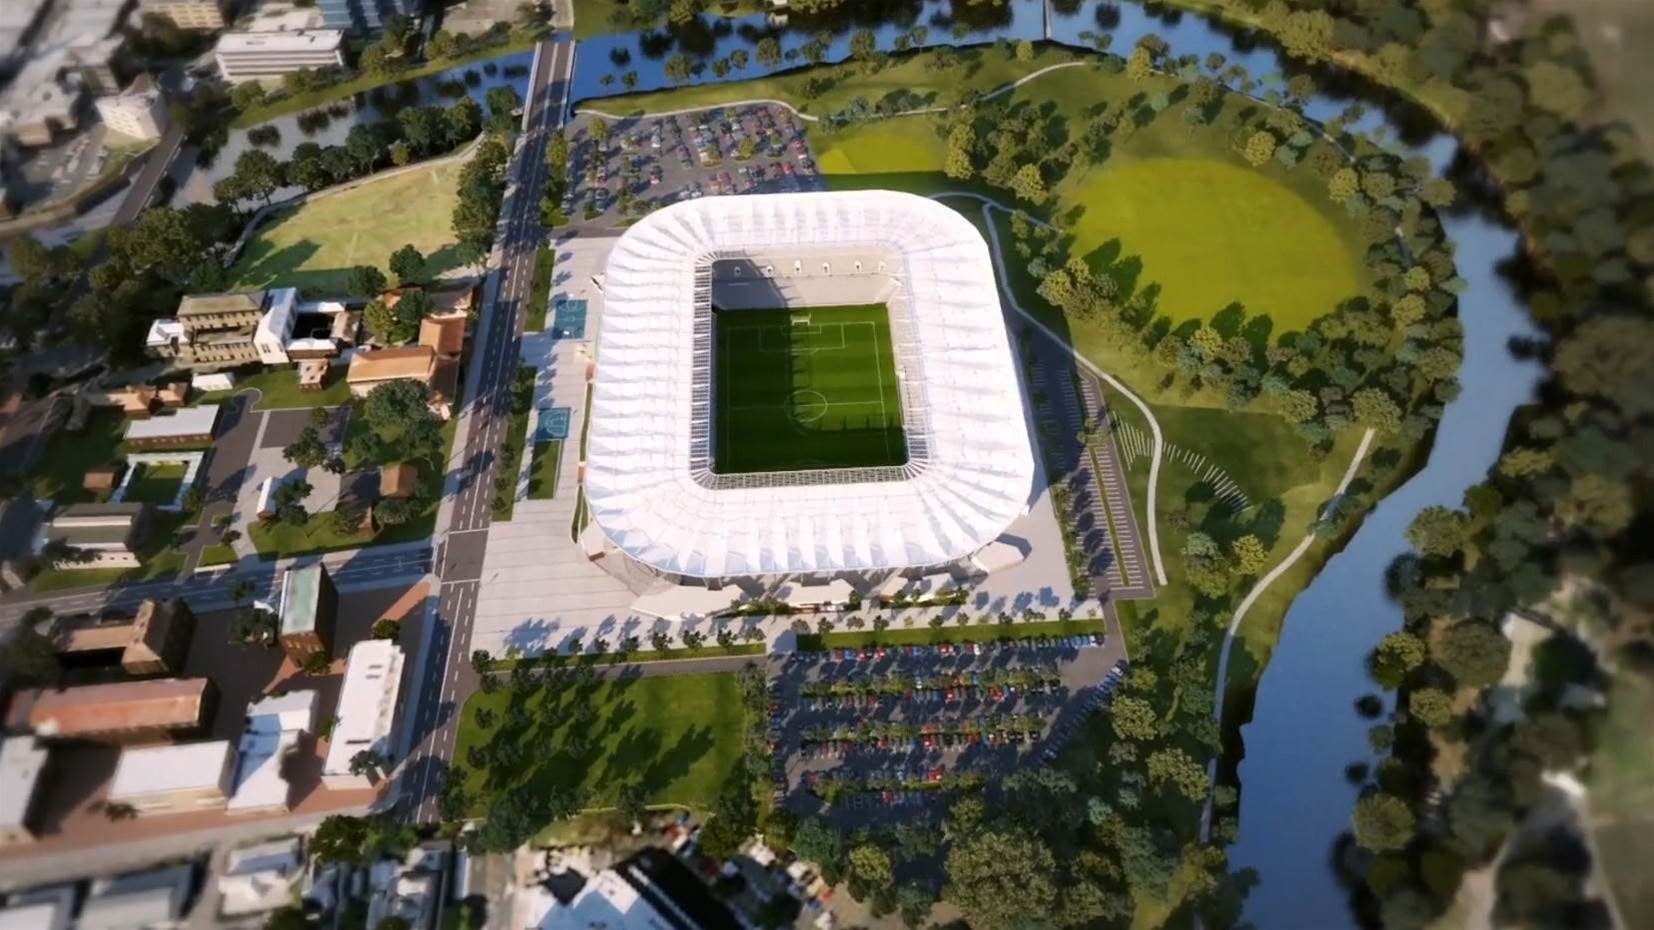 Wanderers target Safe Standing area in new home